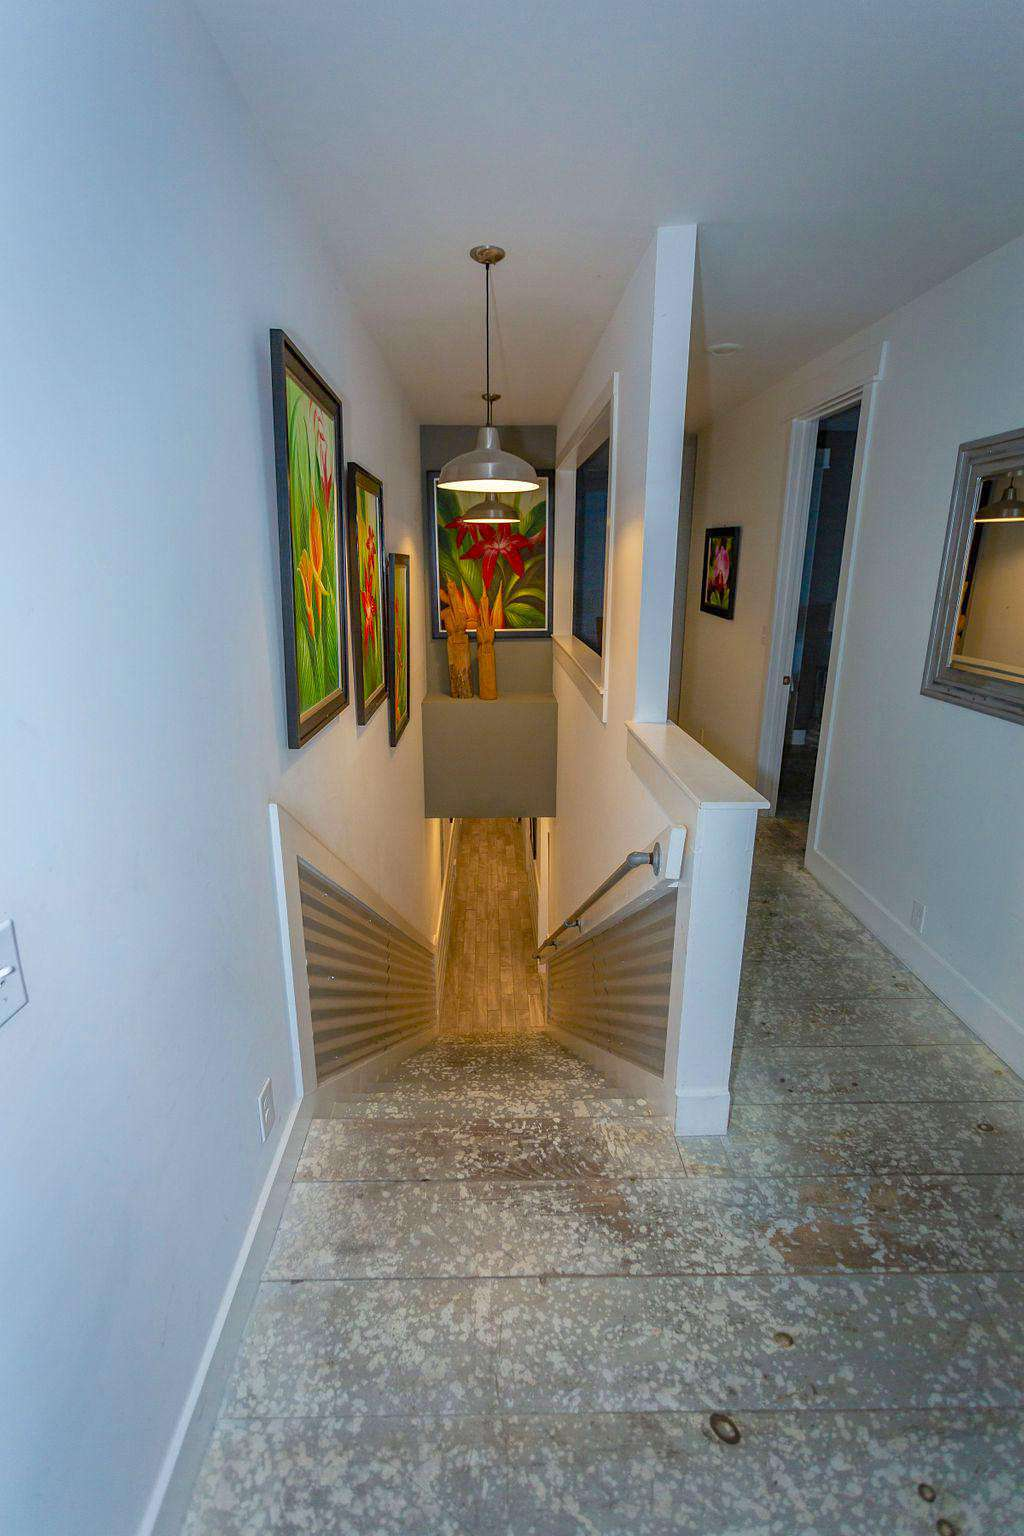 Stairwell leading to upstairs